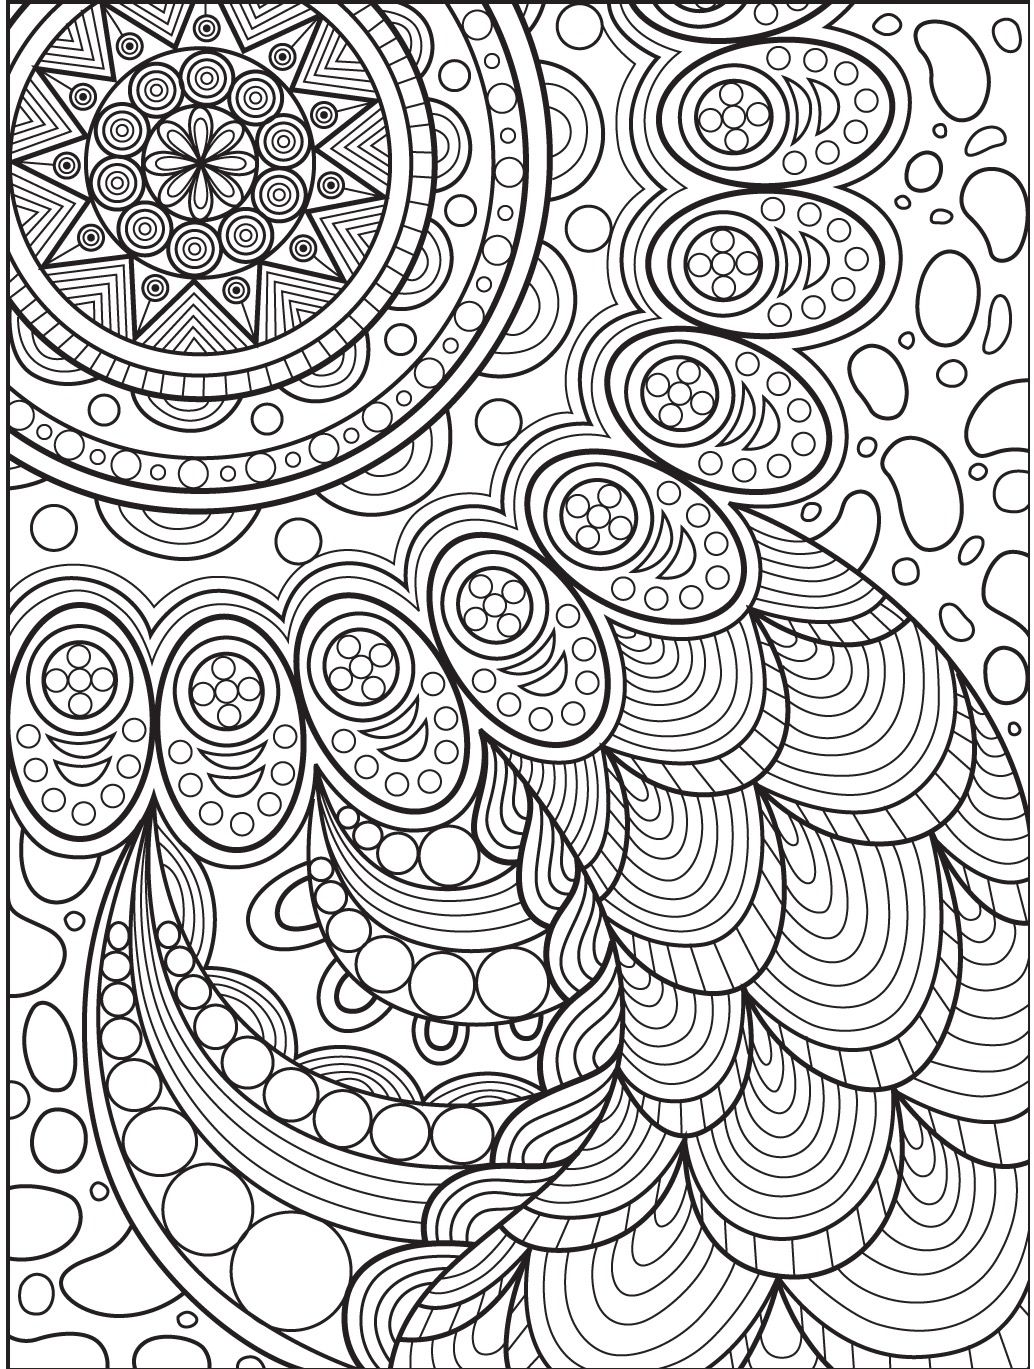 Abstract Coloring Page On Colorish  Coloring Book App For Adults